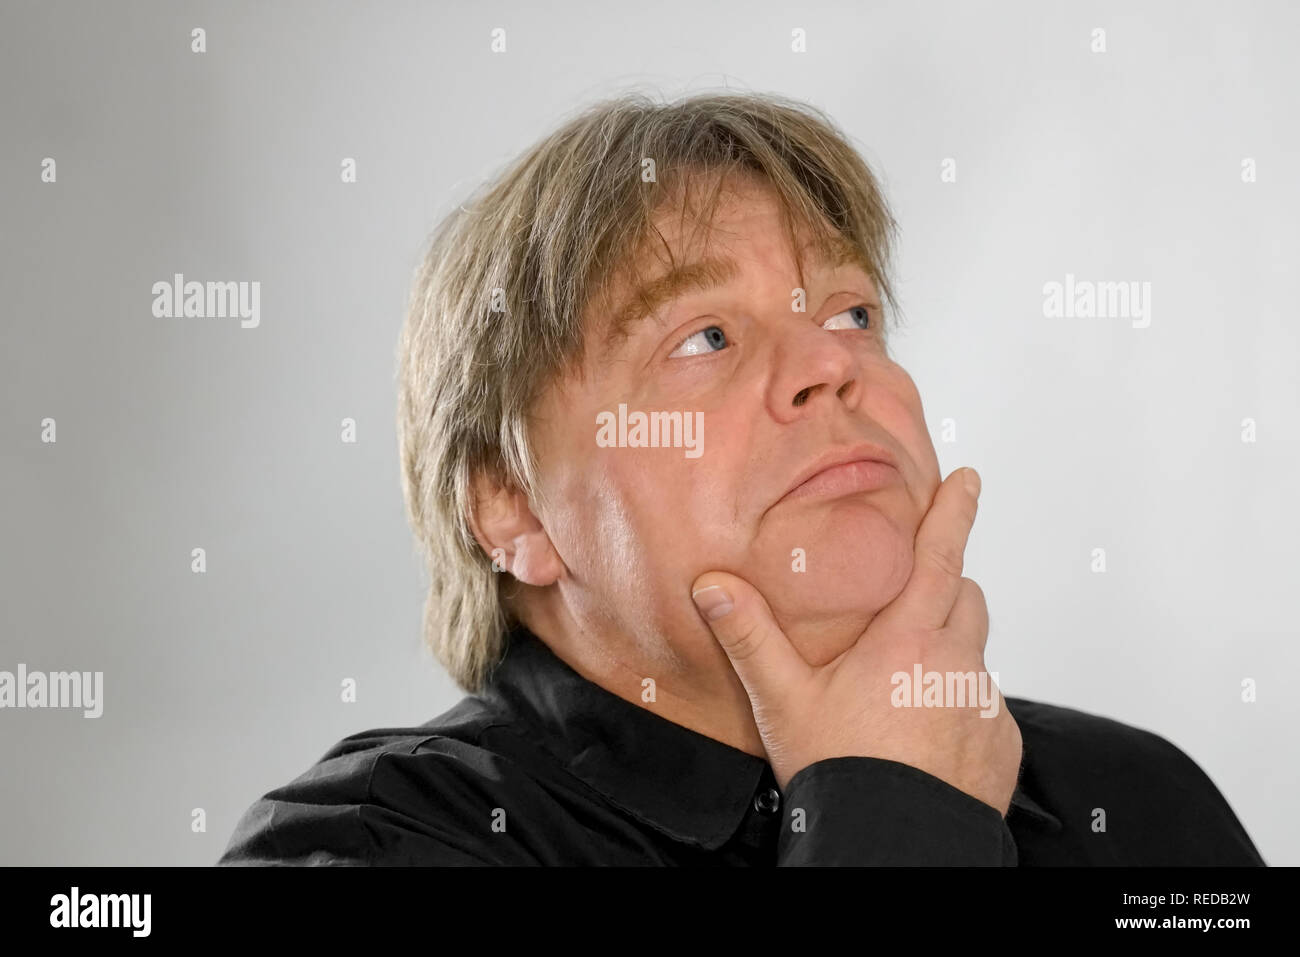 50 year old man with fair skin and blond hair is at a loss. The face shows a lot of facial expressions when thinking. He put his hand under his chin a - Stock Image